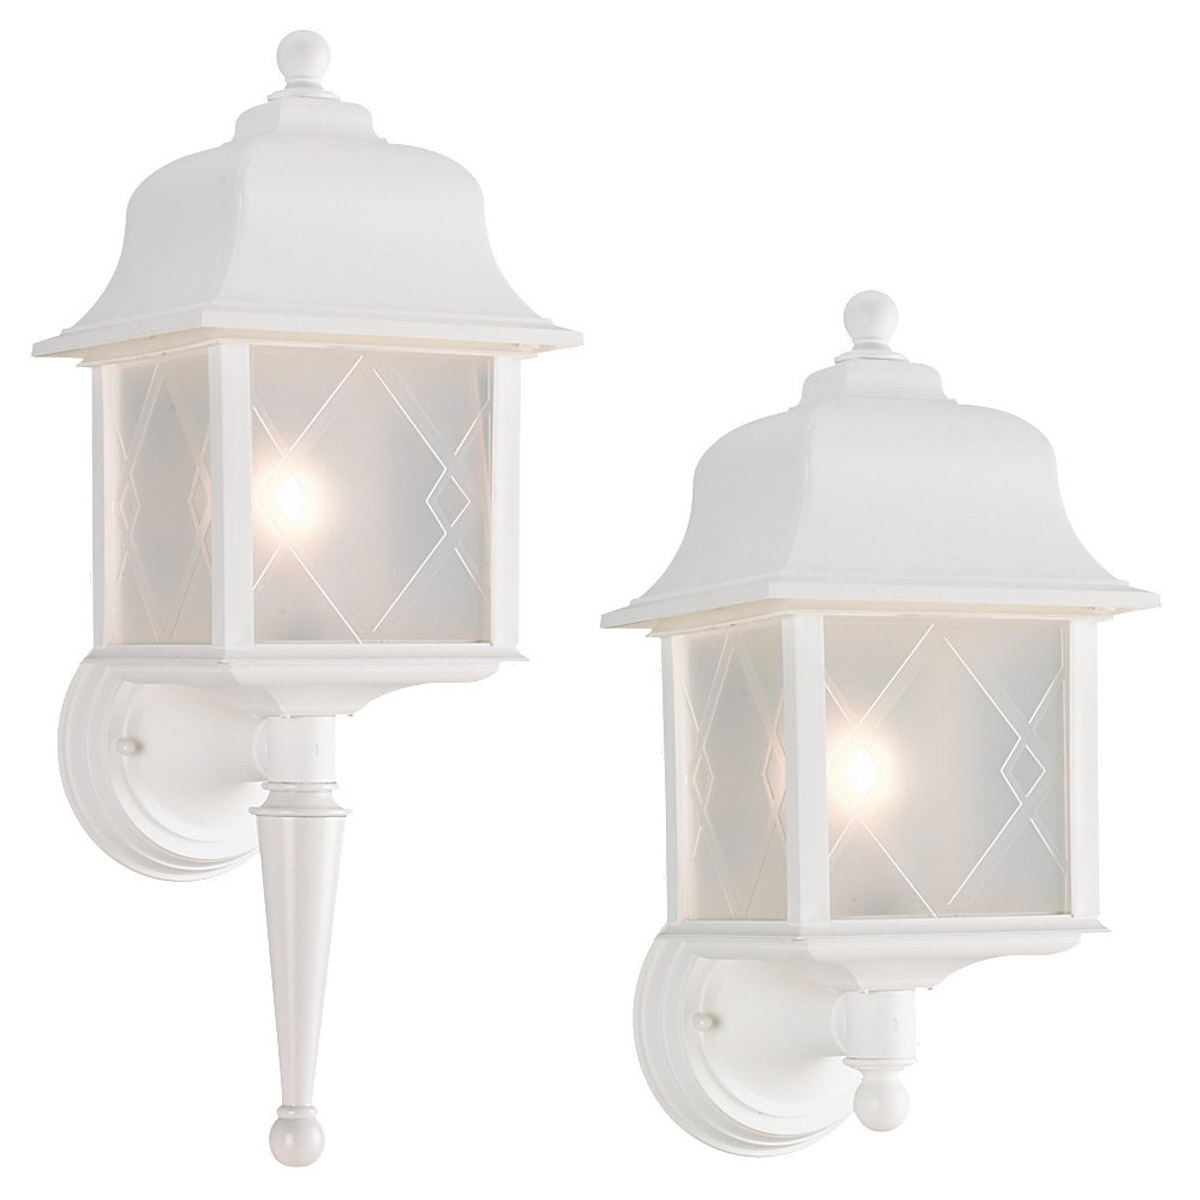 Sea Gull Lighting Harbor Point 1 Light Outdoor Wall Lantern in White 88103-15 photo